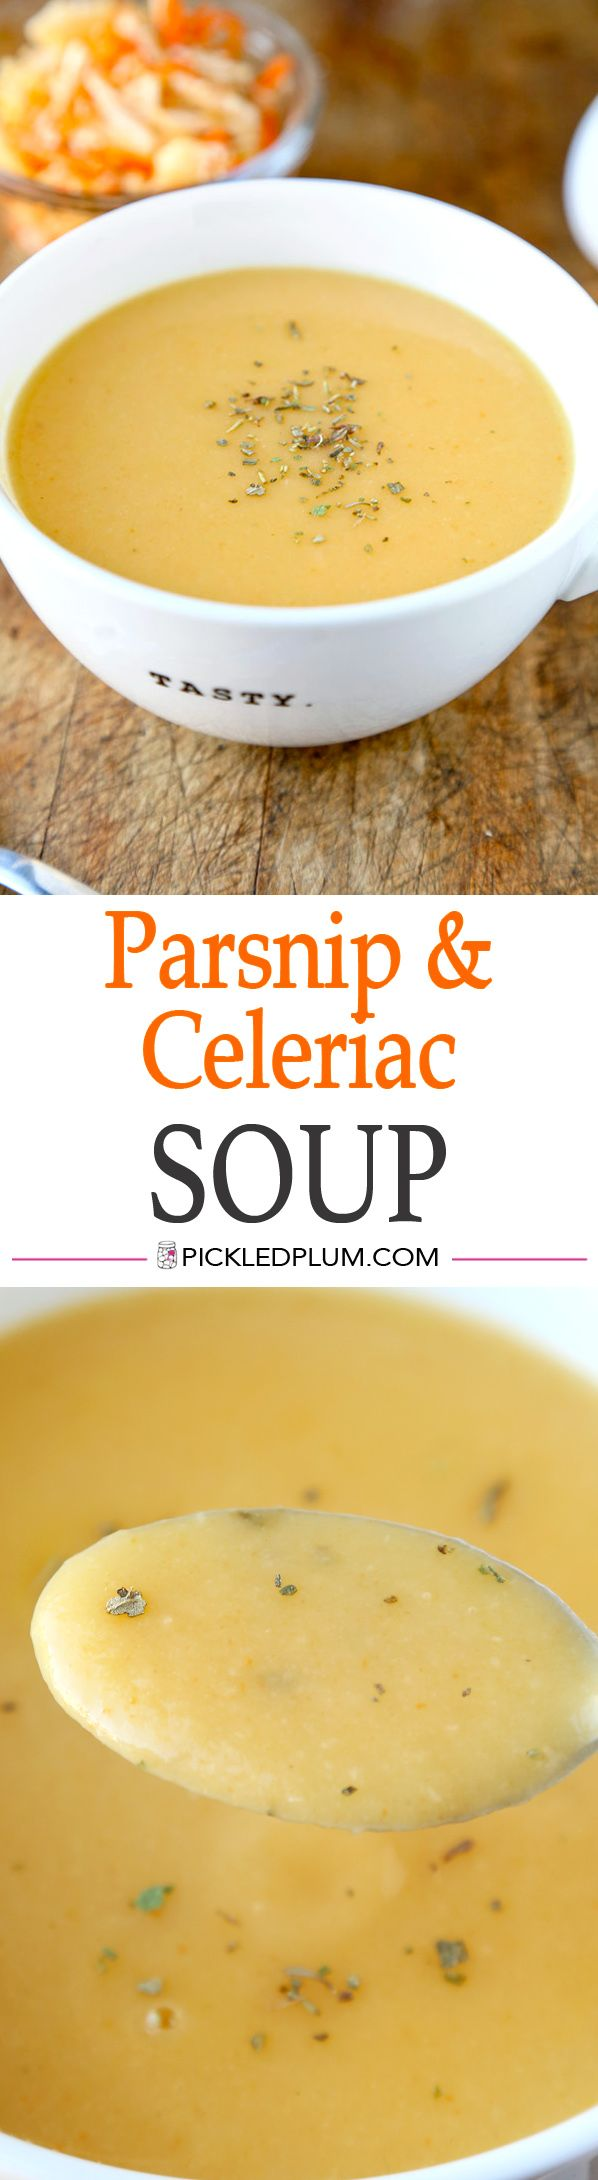 Healthy and Easy Recipe for Parsnip and Celeriac Soup with Herbes de Provence. Yummy! http://www.pickledplum.com/parsnip-soup-healthy-recipe/